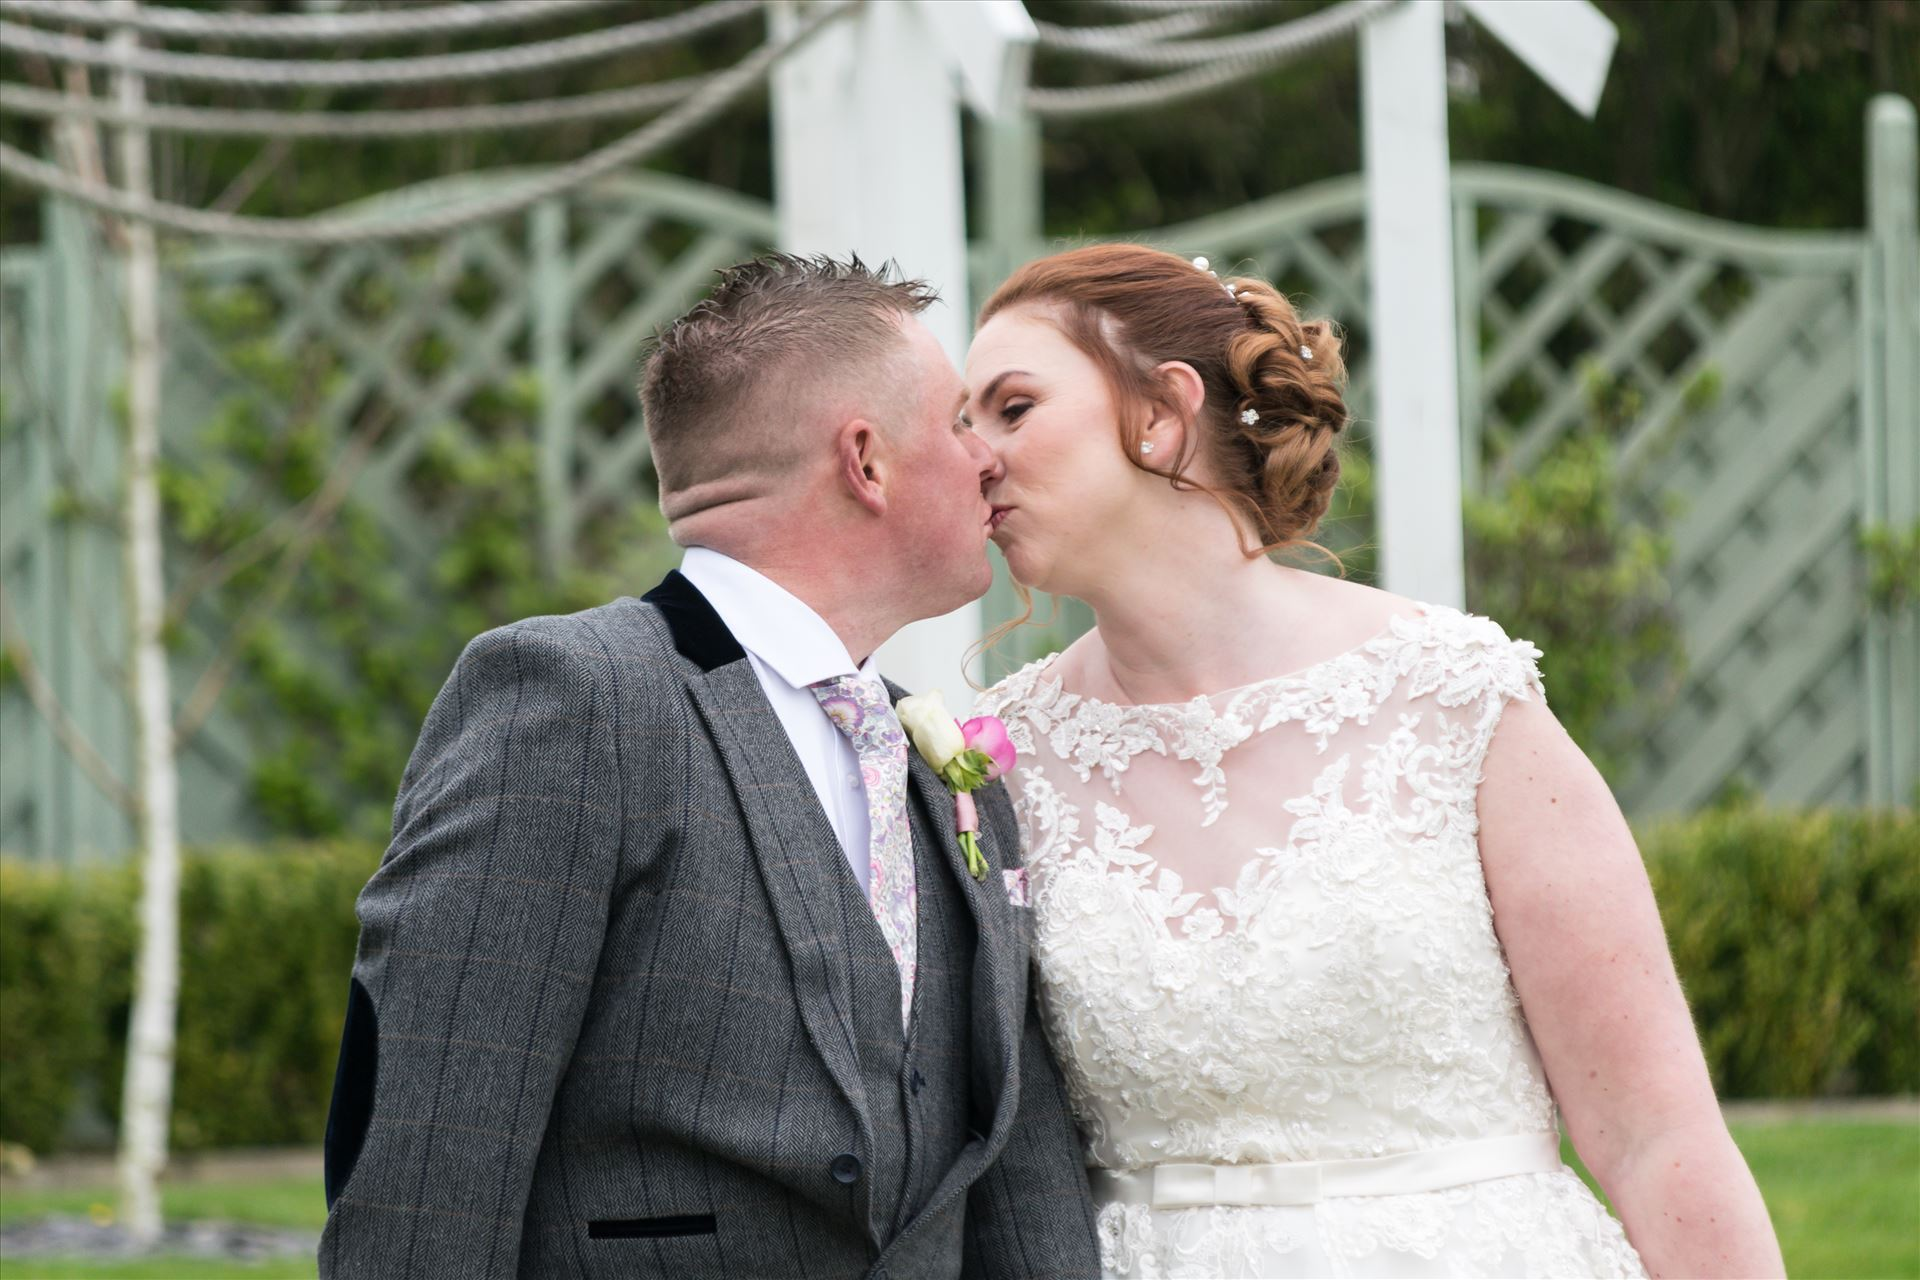 Nikky and Neils wedding-a31.jpg -  by AJ Stoves Photography